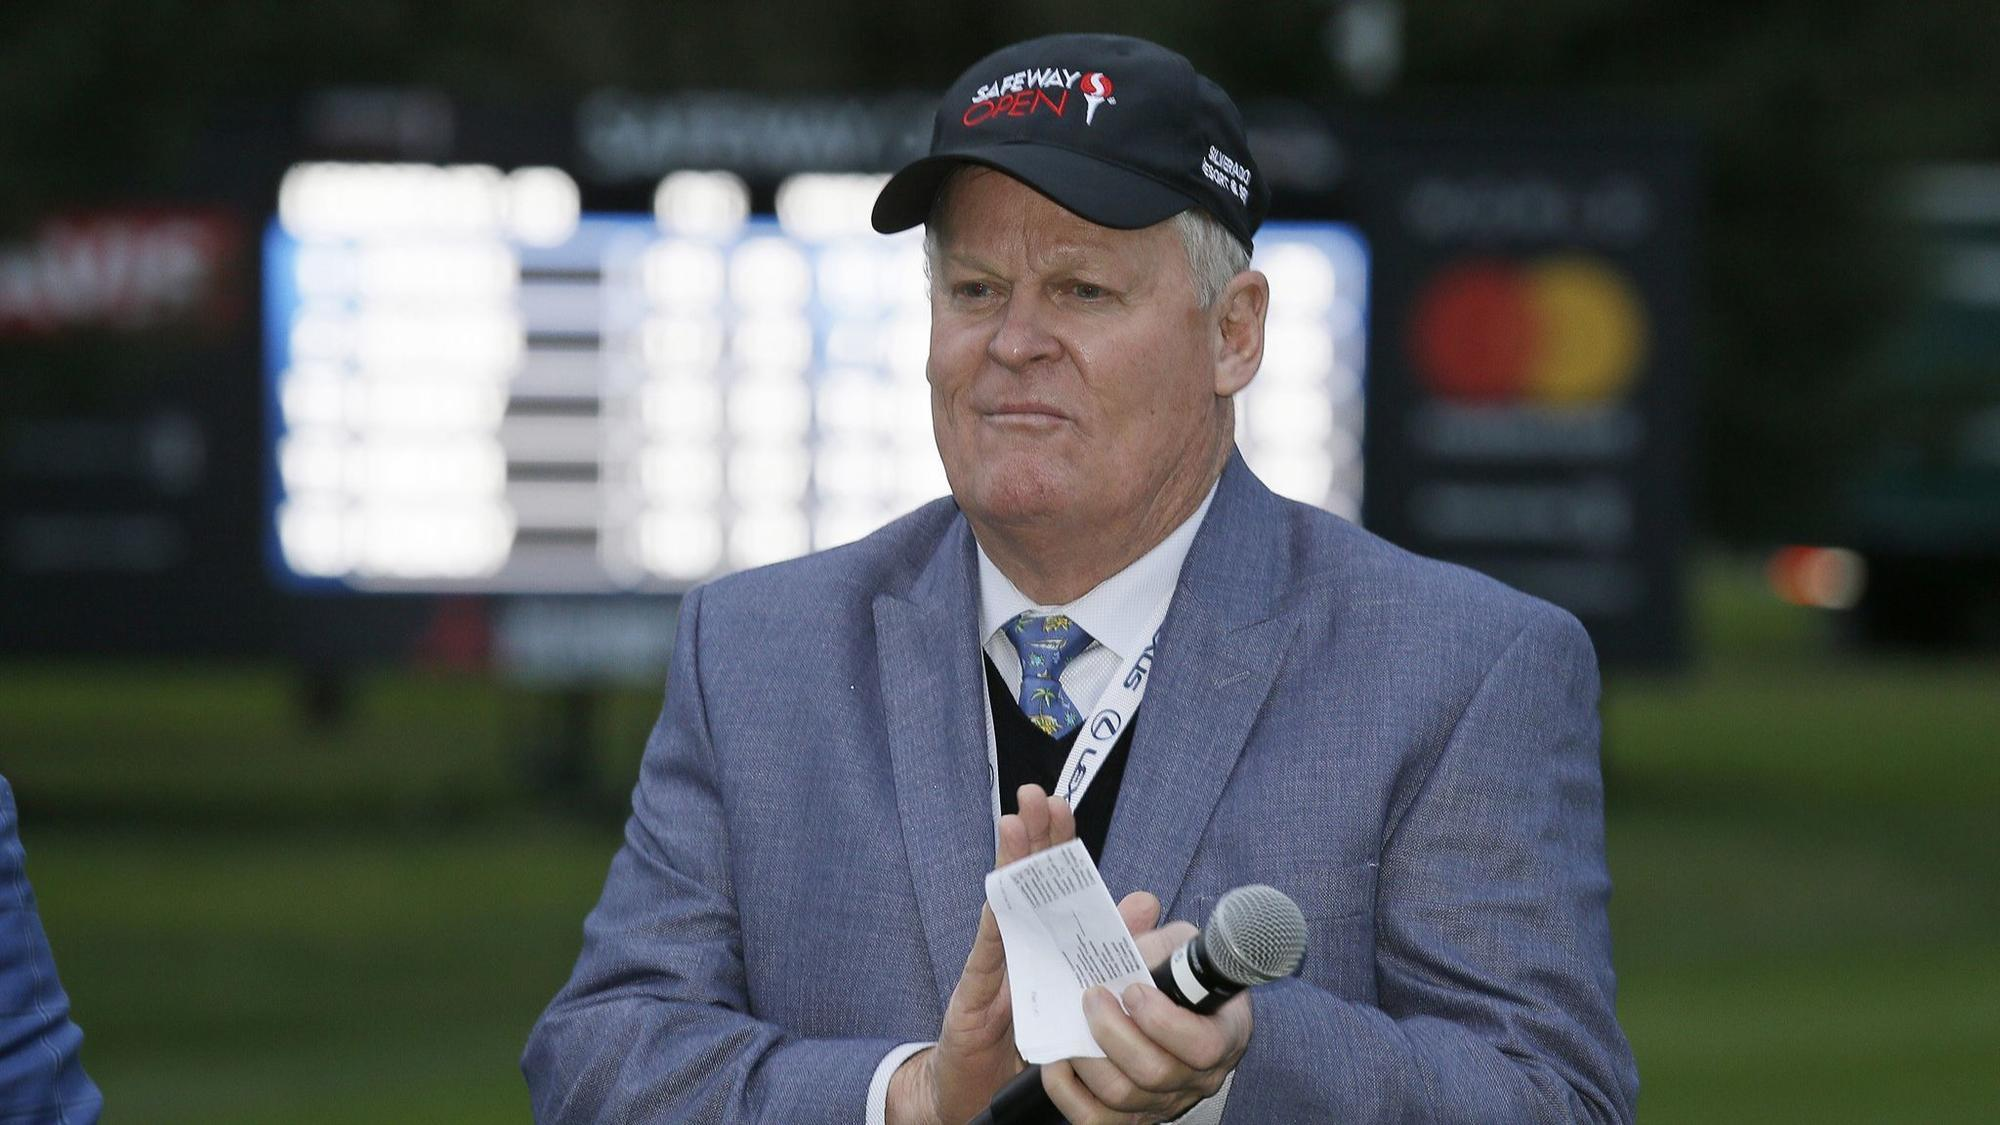 Johnny Miller to retire from NBC golf booth will be replaced by Paul Azinger reports say